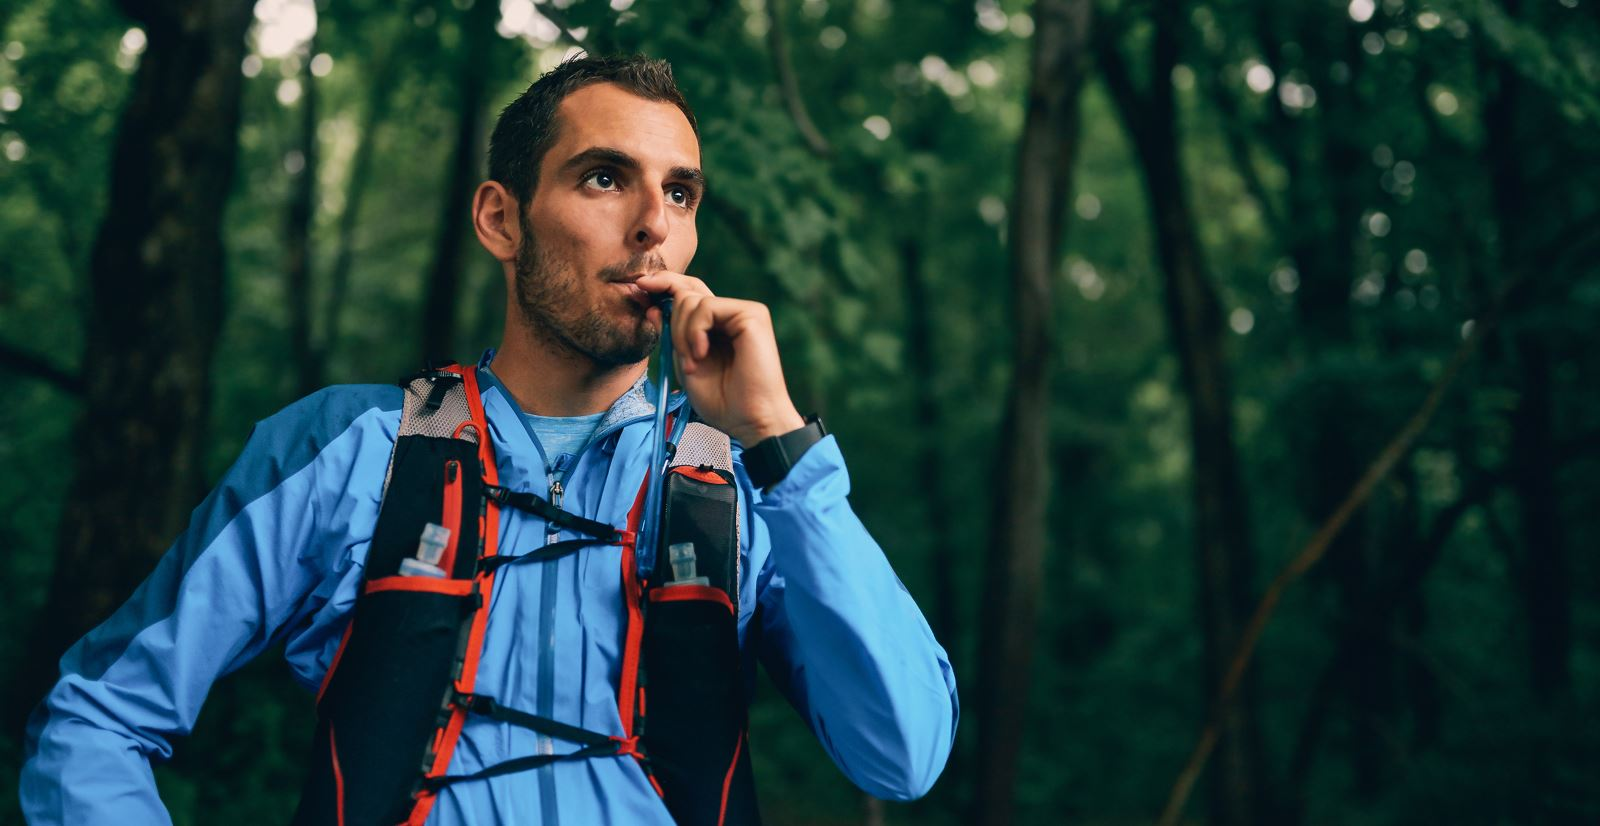 How to clean a hydration bladder